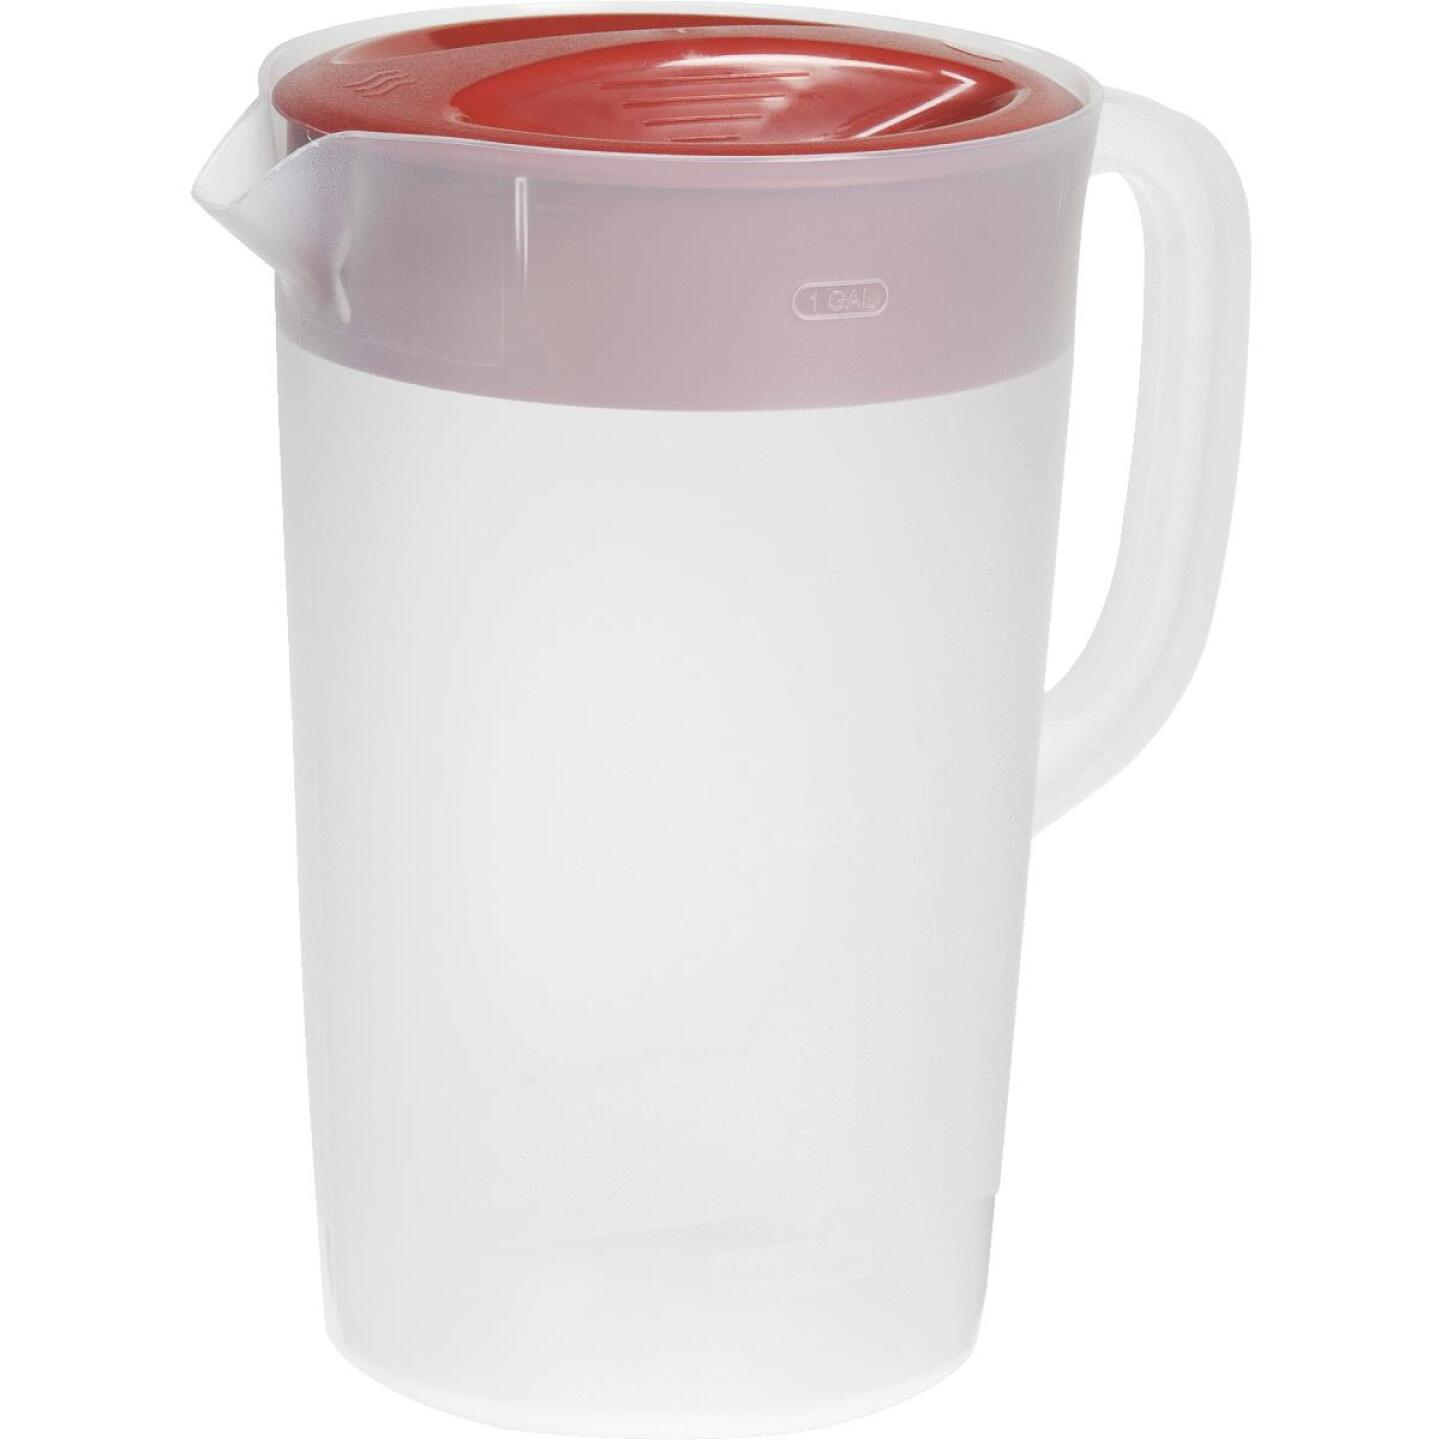 Rubbermaid Frosted Plastic Pitcher with Red Lid, 1 Gal. Image 1